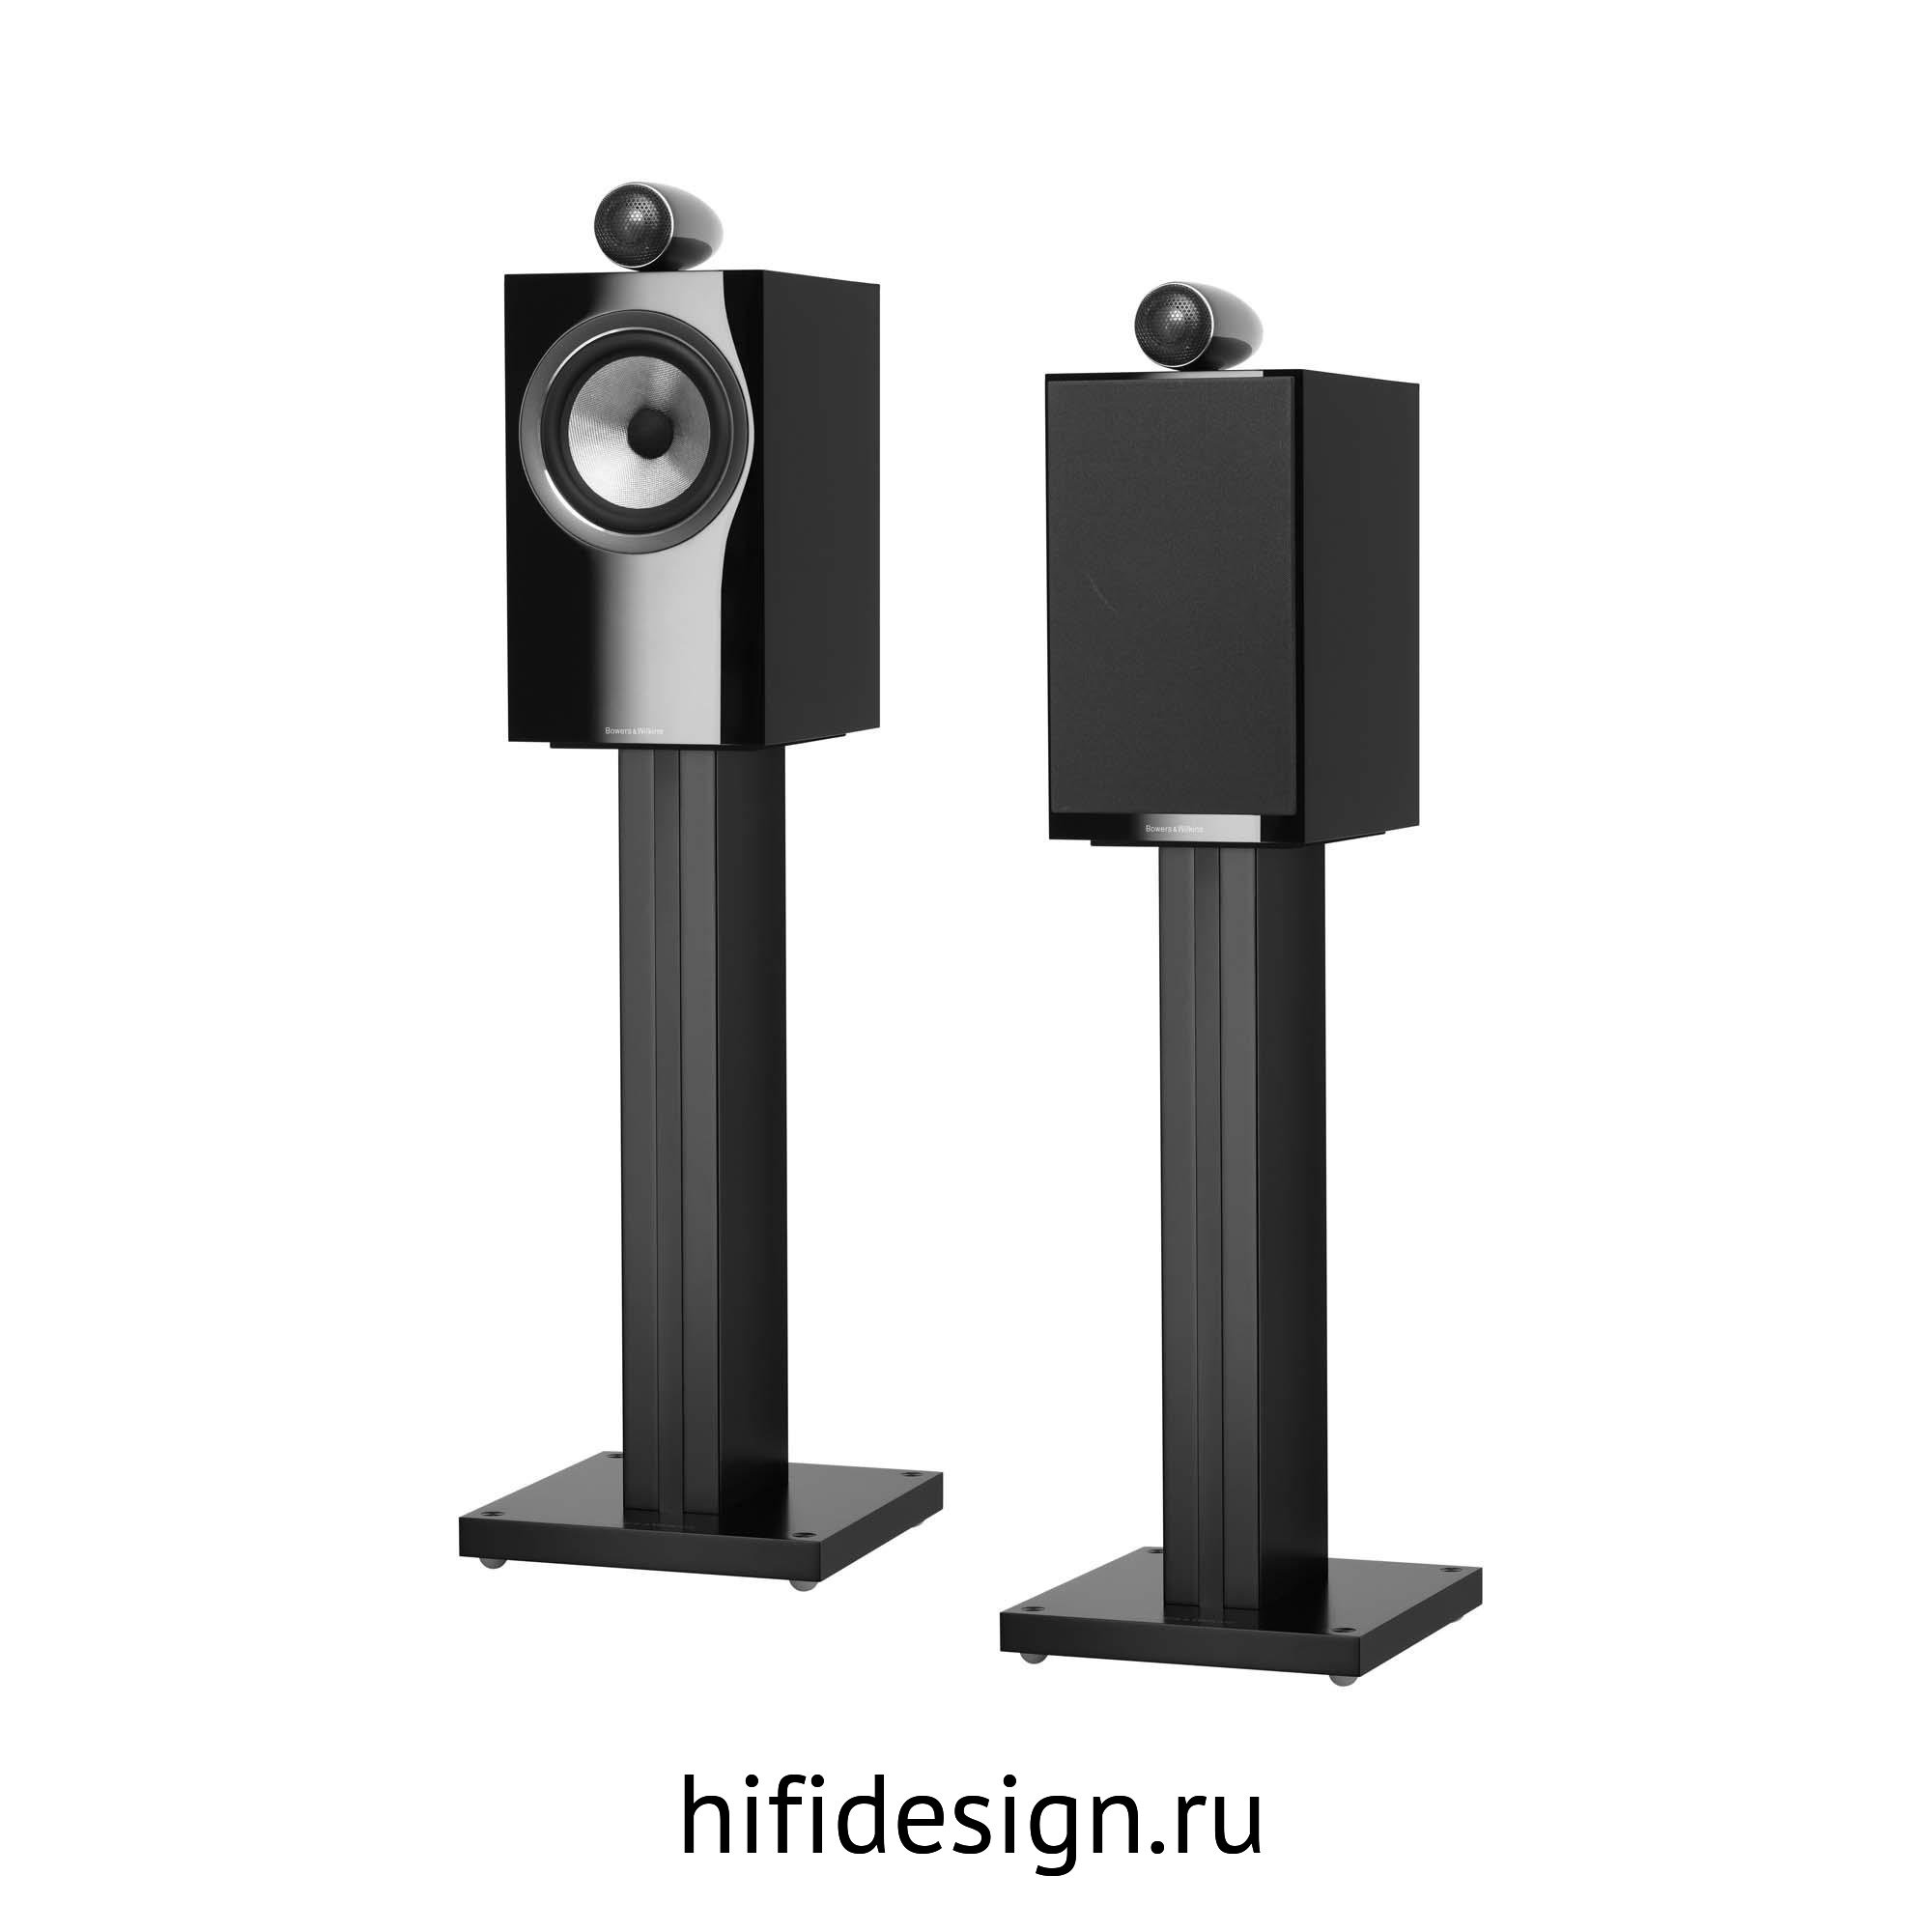 ГЉГіГЇГЁГІГј Bowers&Wilkins 705 S2 gloss black